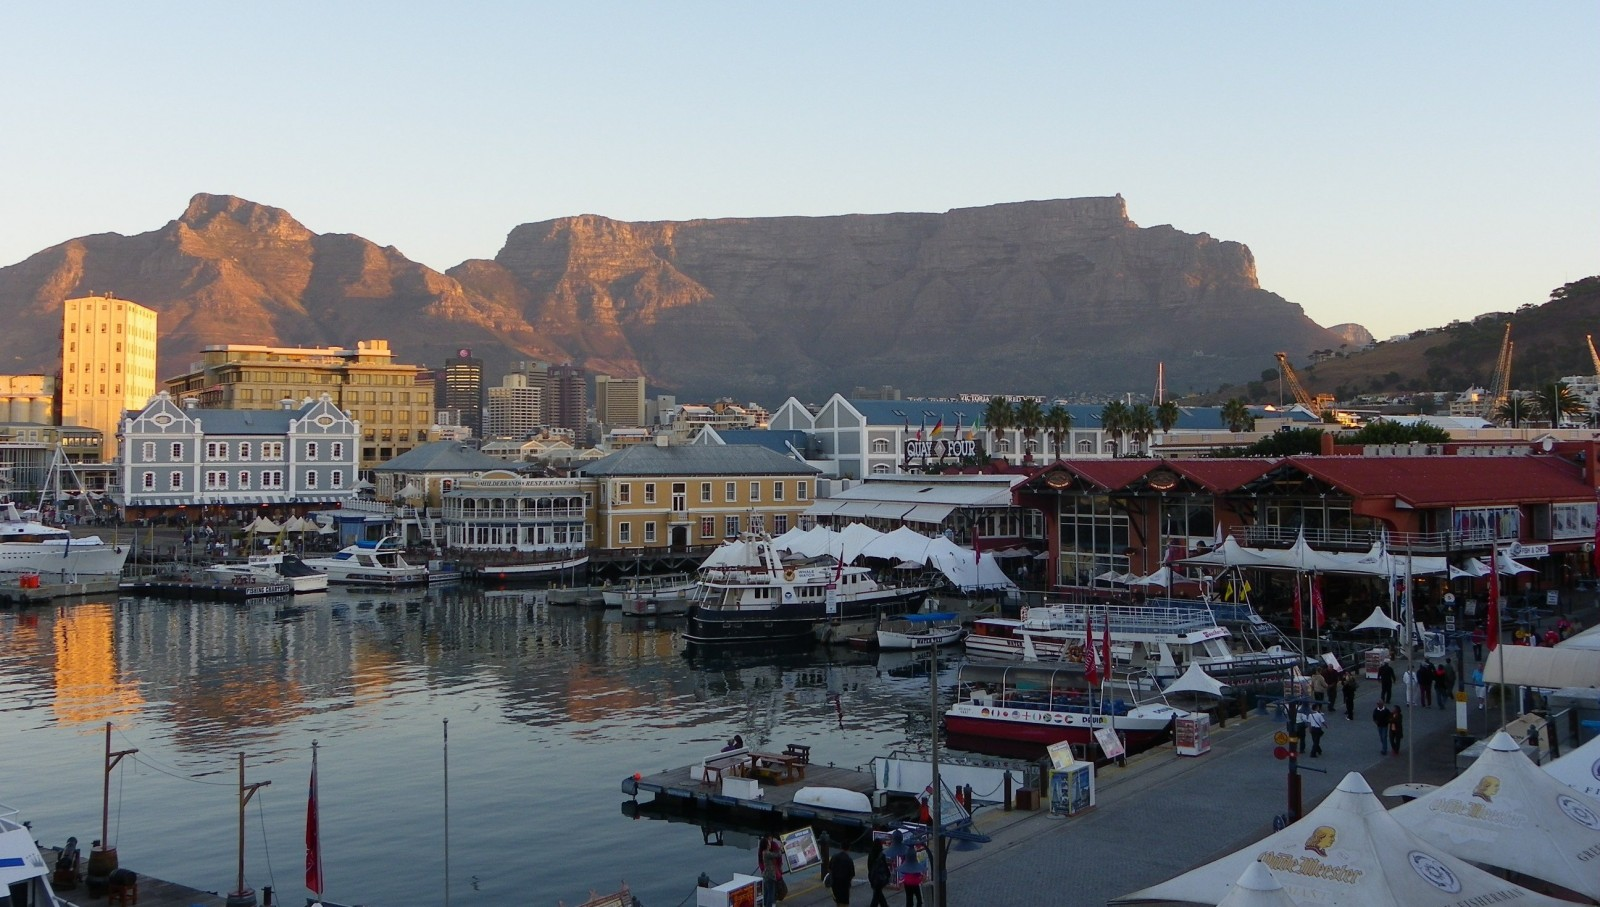 Our Cape Town City Day Tour includes the highlights of iconic Table Mountain, one of the 7 natural wonders of the world, as well as the popular and vibrant Cape Town Waterfront